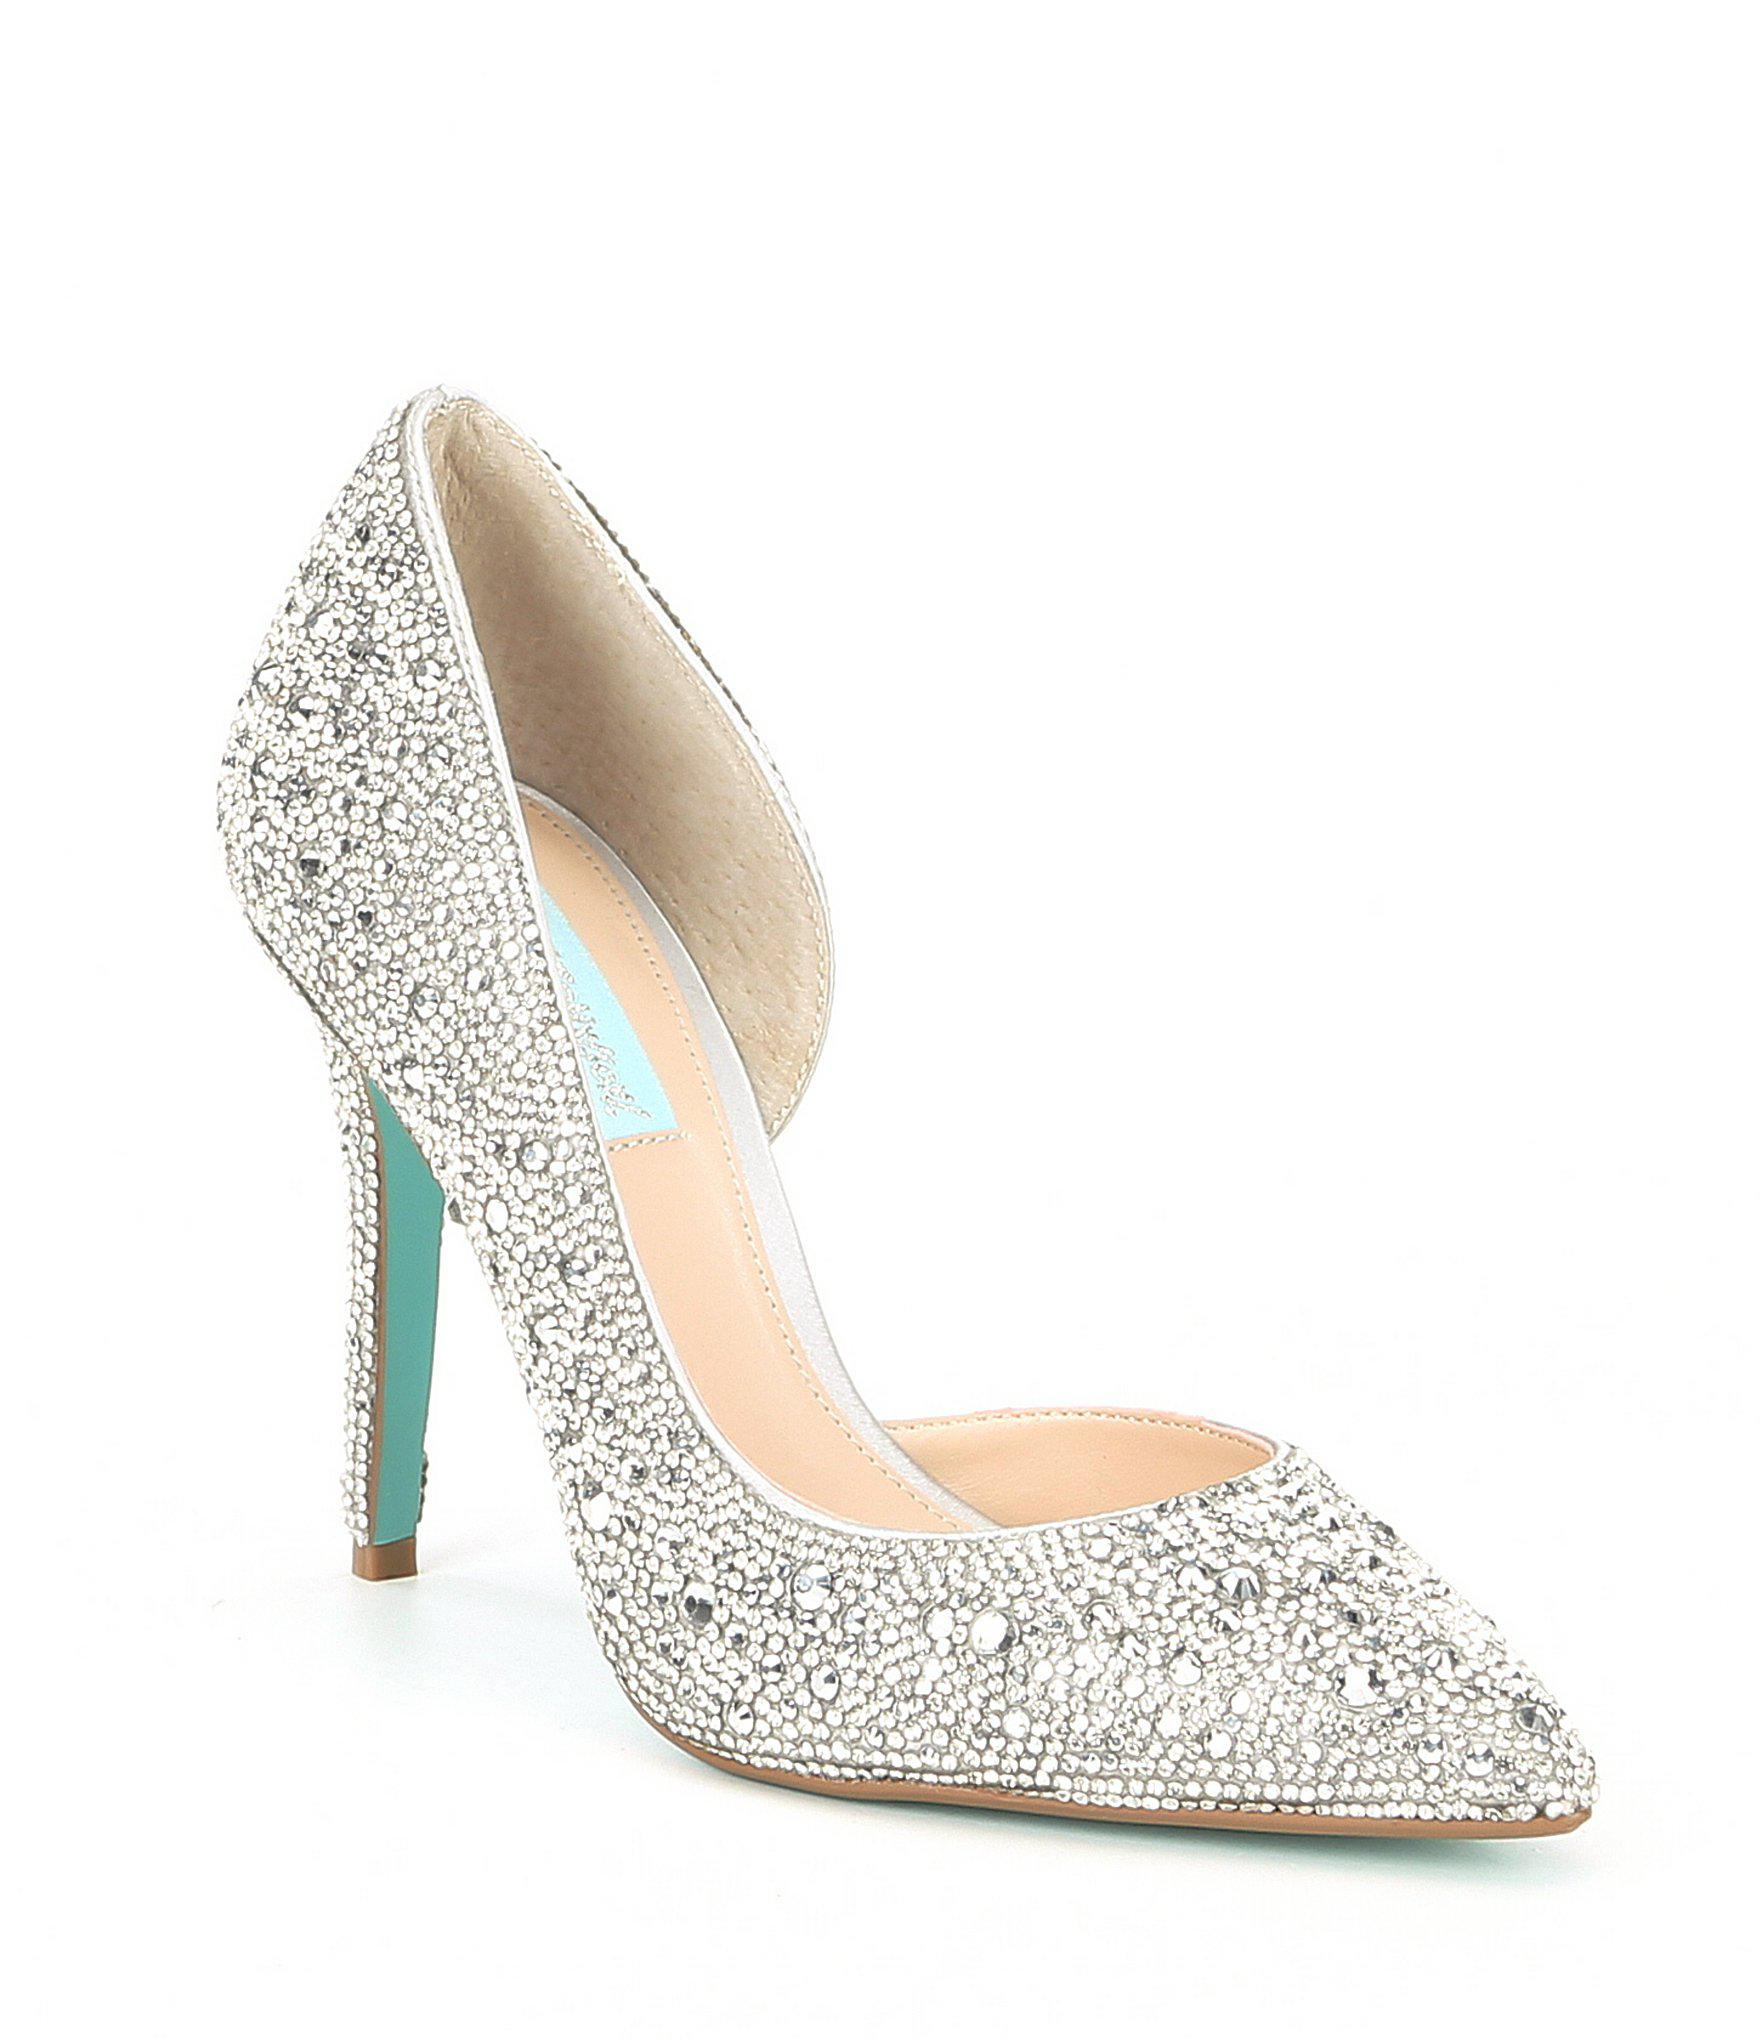 4cd34ea4c25 Lyst - Betsey Johnson Blue By Hazil Jeweled Pumps in Metallic